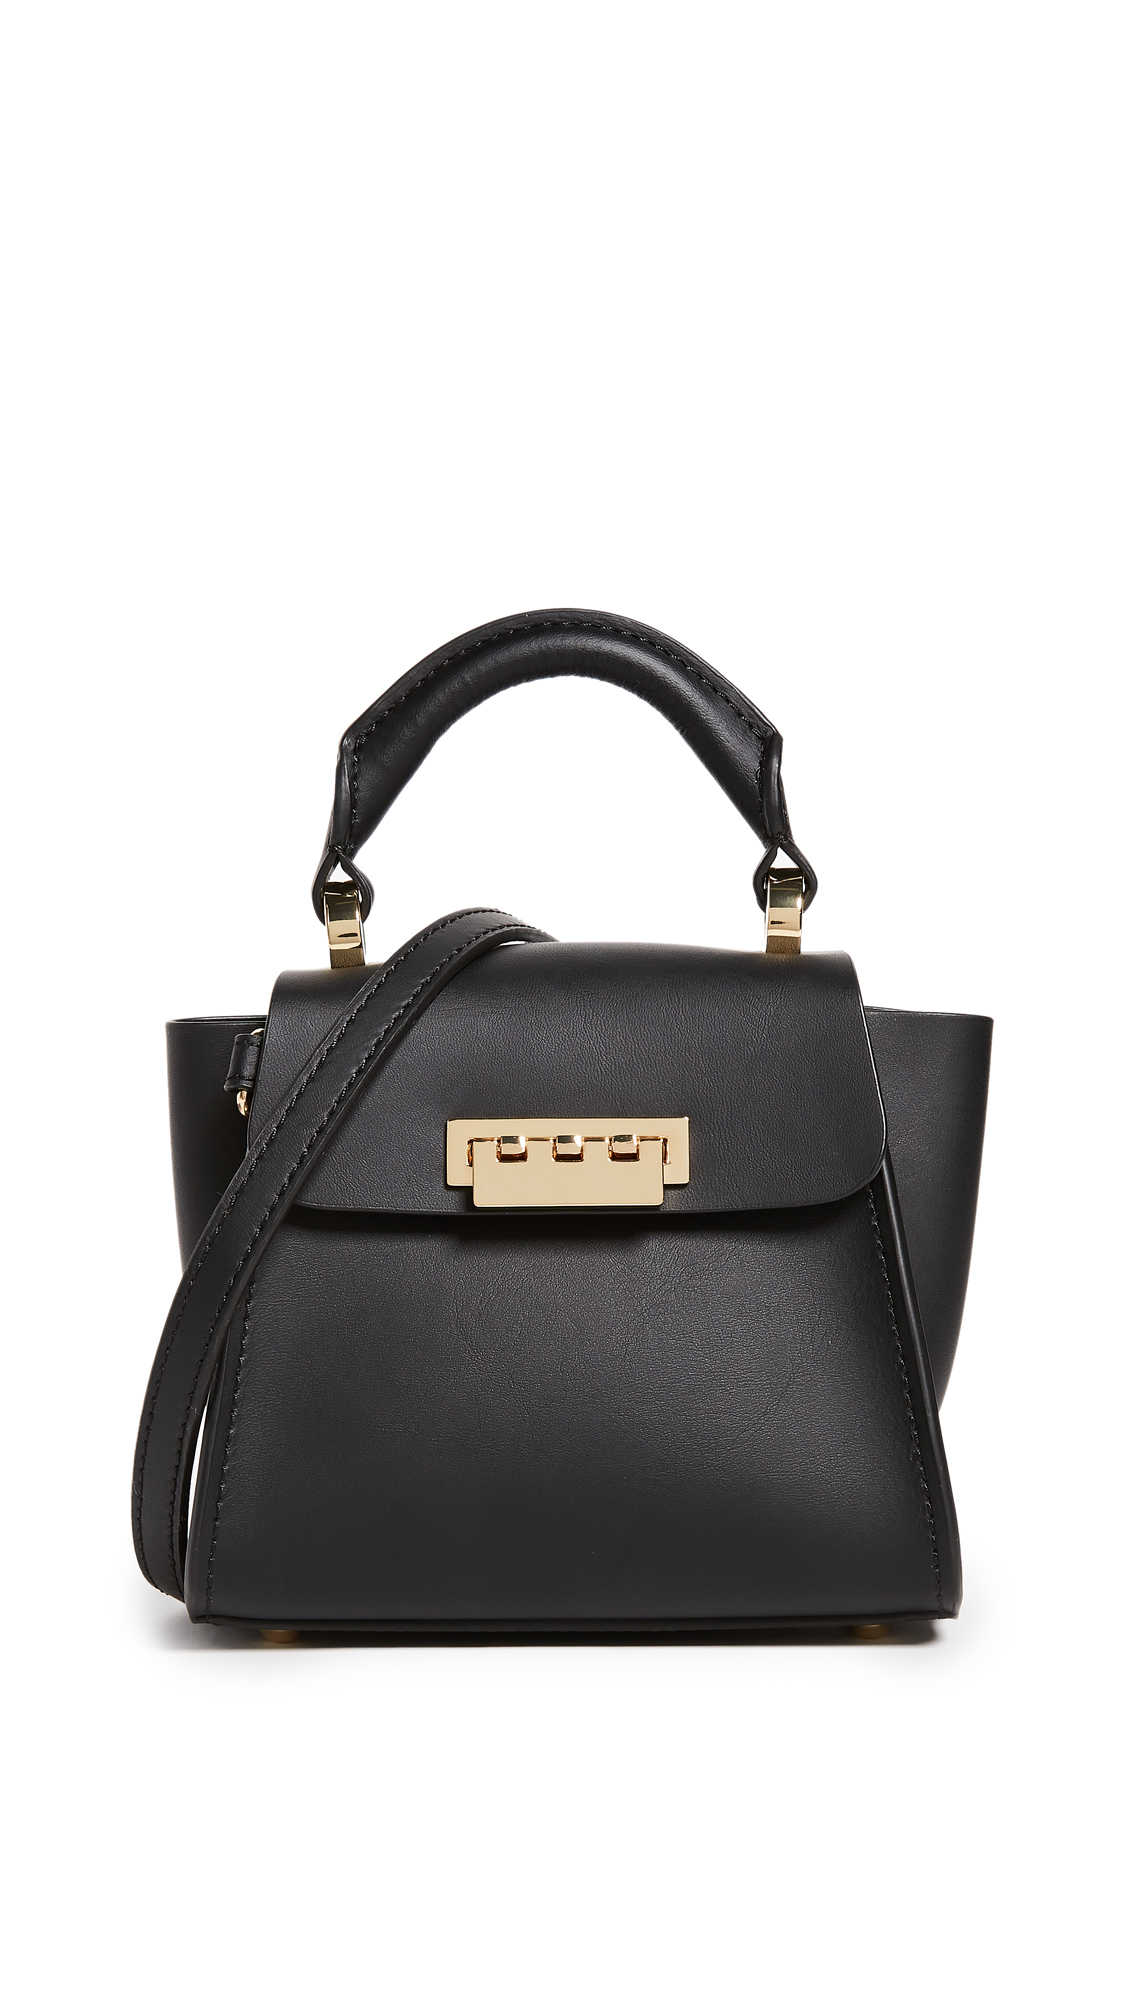 ZAC Zac Posen Eartha Top Handle Mini Cross Body Bag - Black